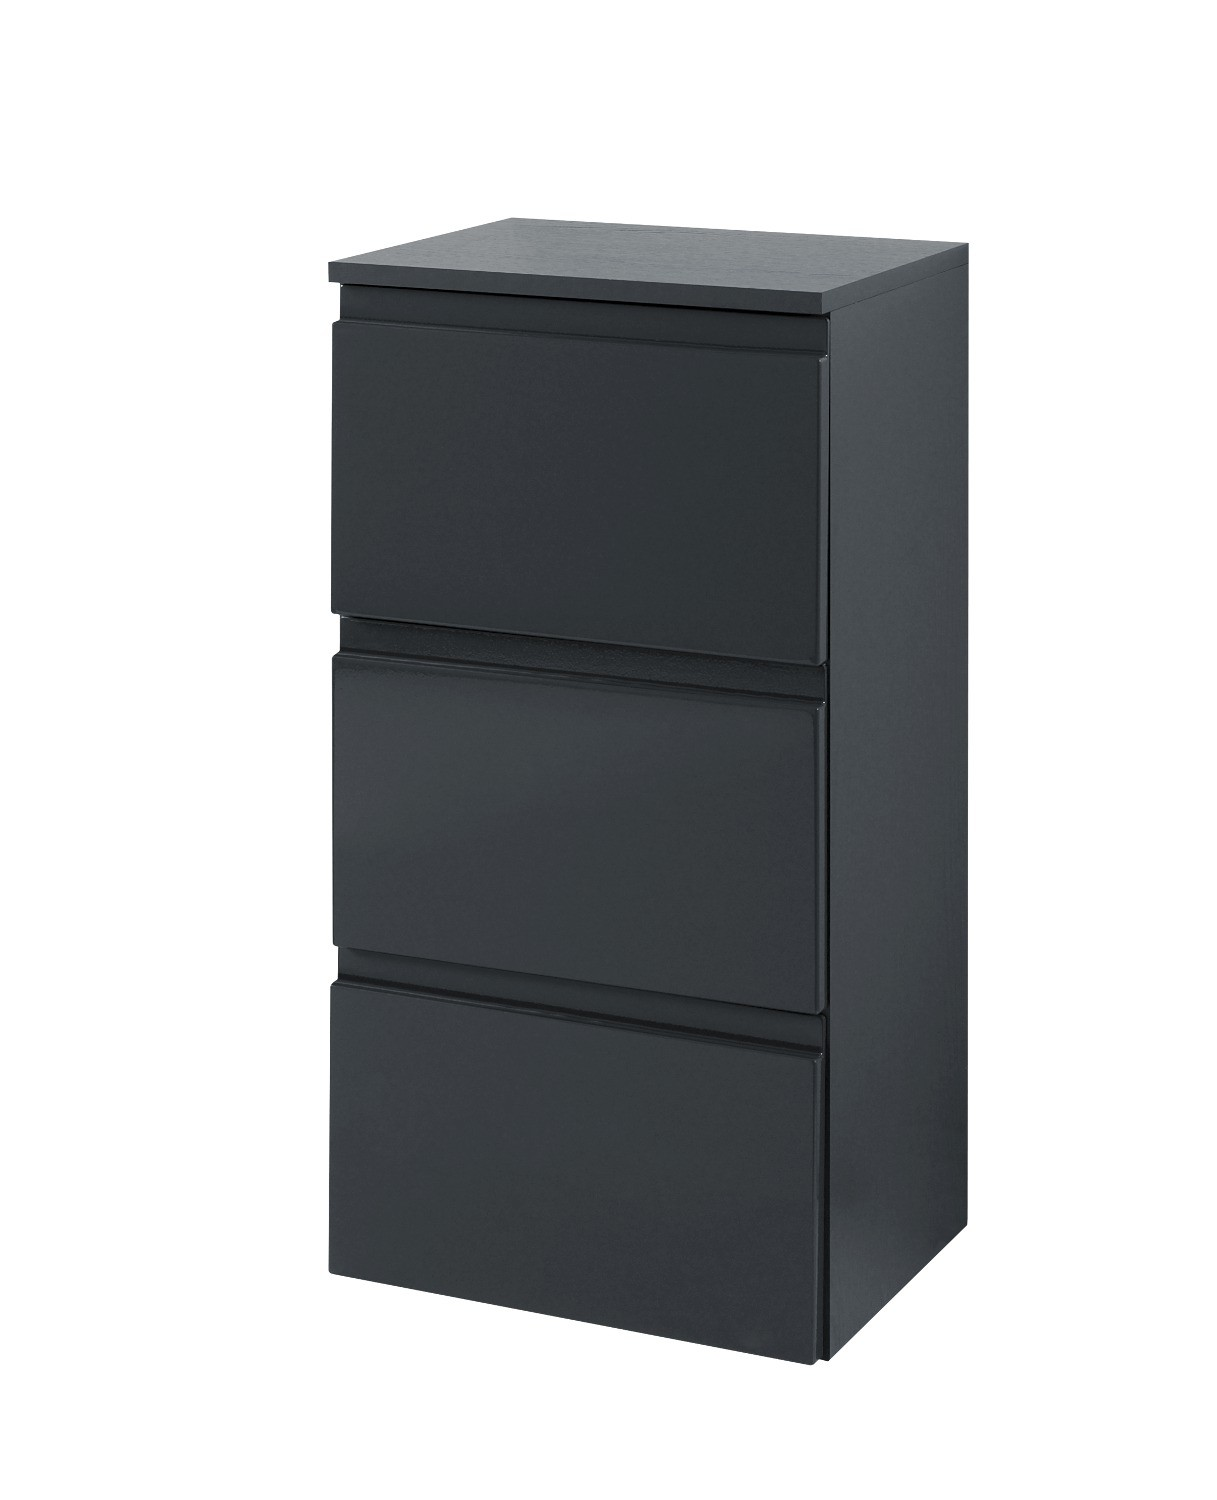 bad unterschrank cardiff 3 schubladen 40 cm breit hochglanz grau bad cardiff. Black Bedroom Furniture Sets. Home Design Ideas